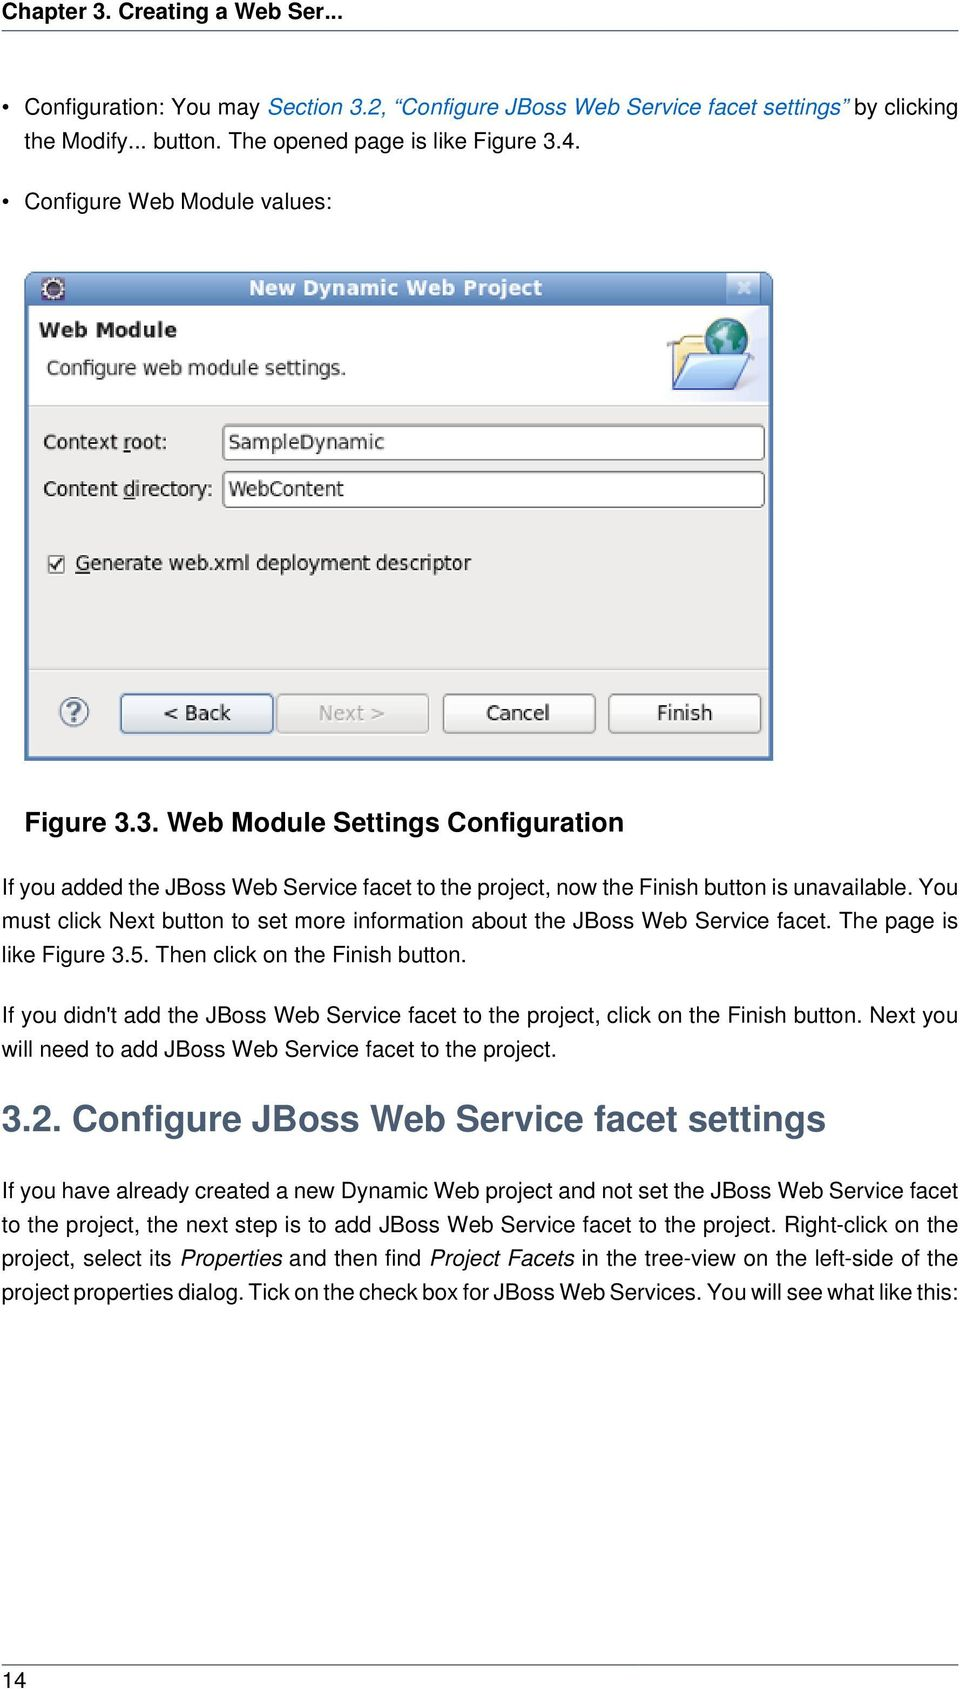 You must click Next button to set more information about the JBoss Web Service facet. The page is like Figure 3.5. Then click on the Finish button.